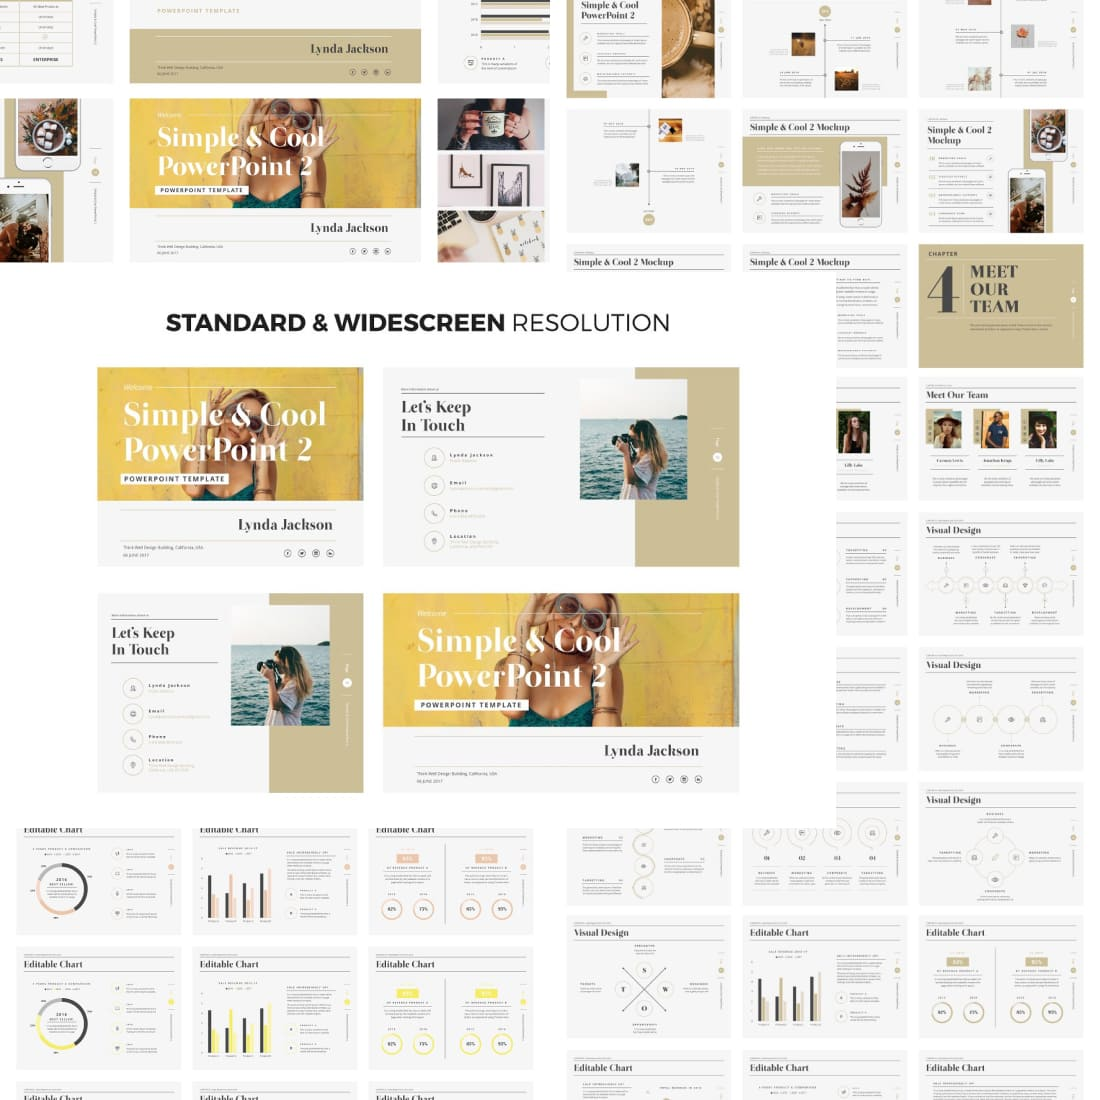 02 Simple Cool PowerPoint Template 2 1100x1100 1